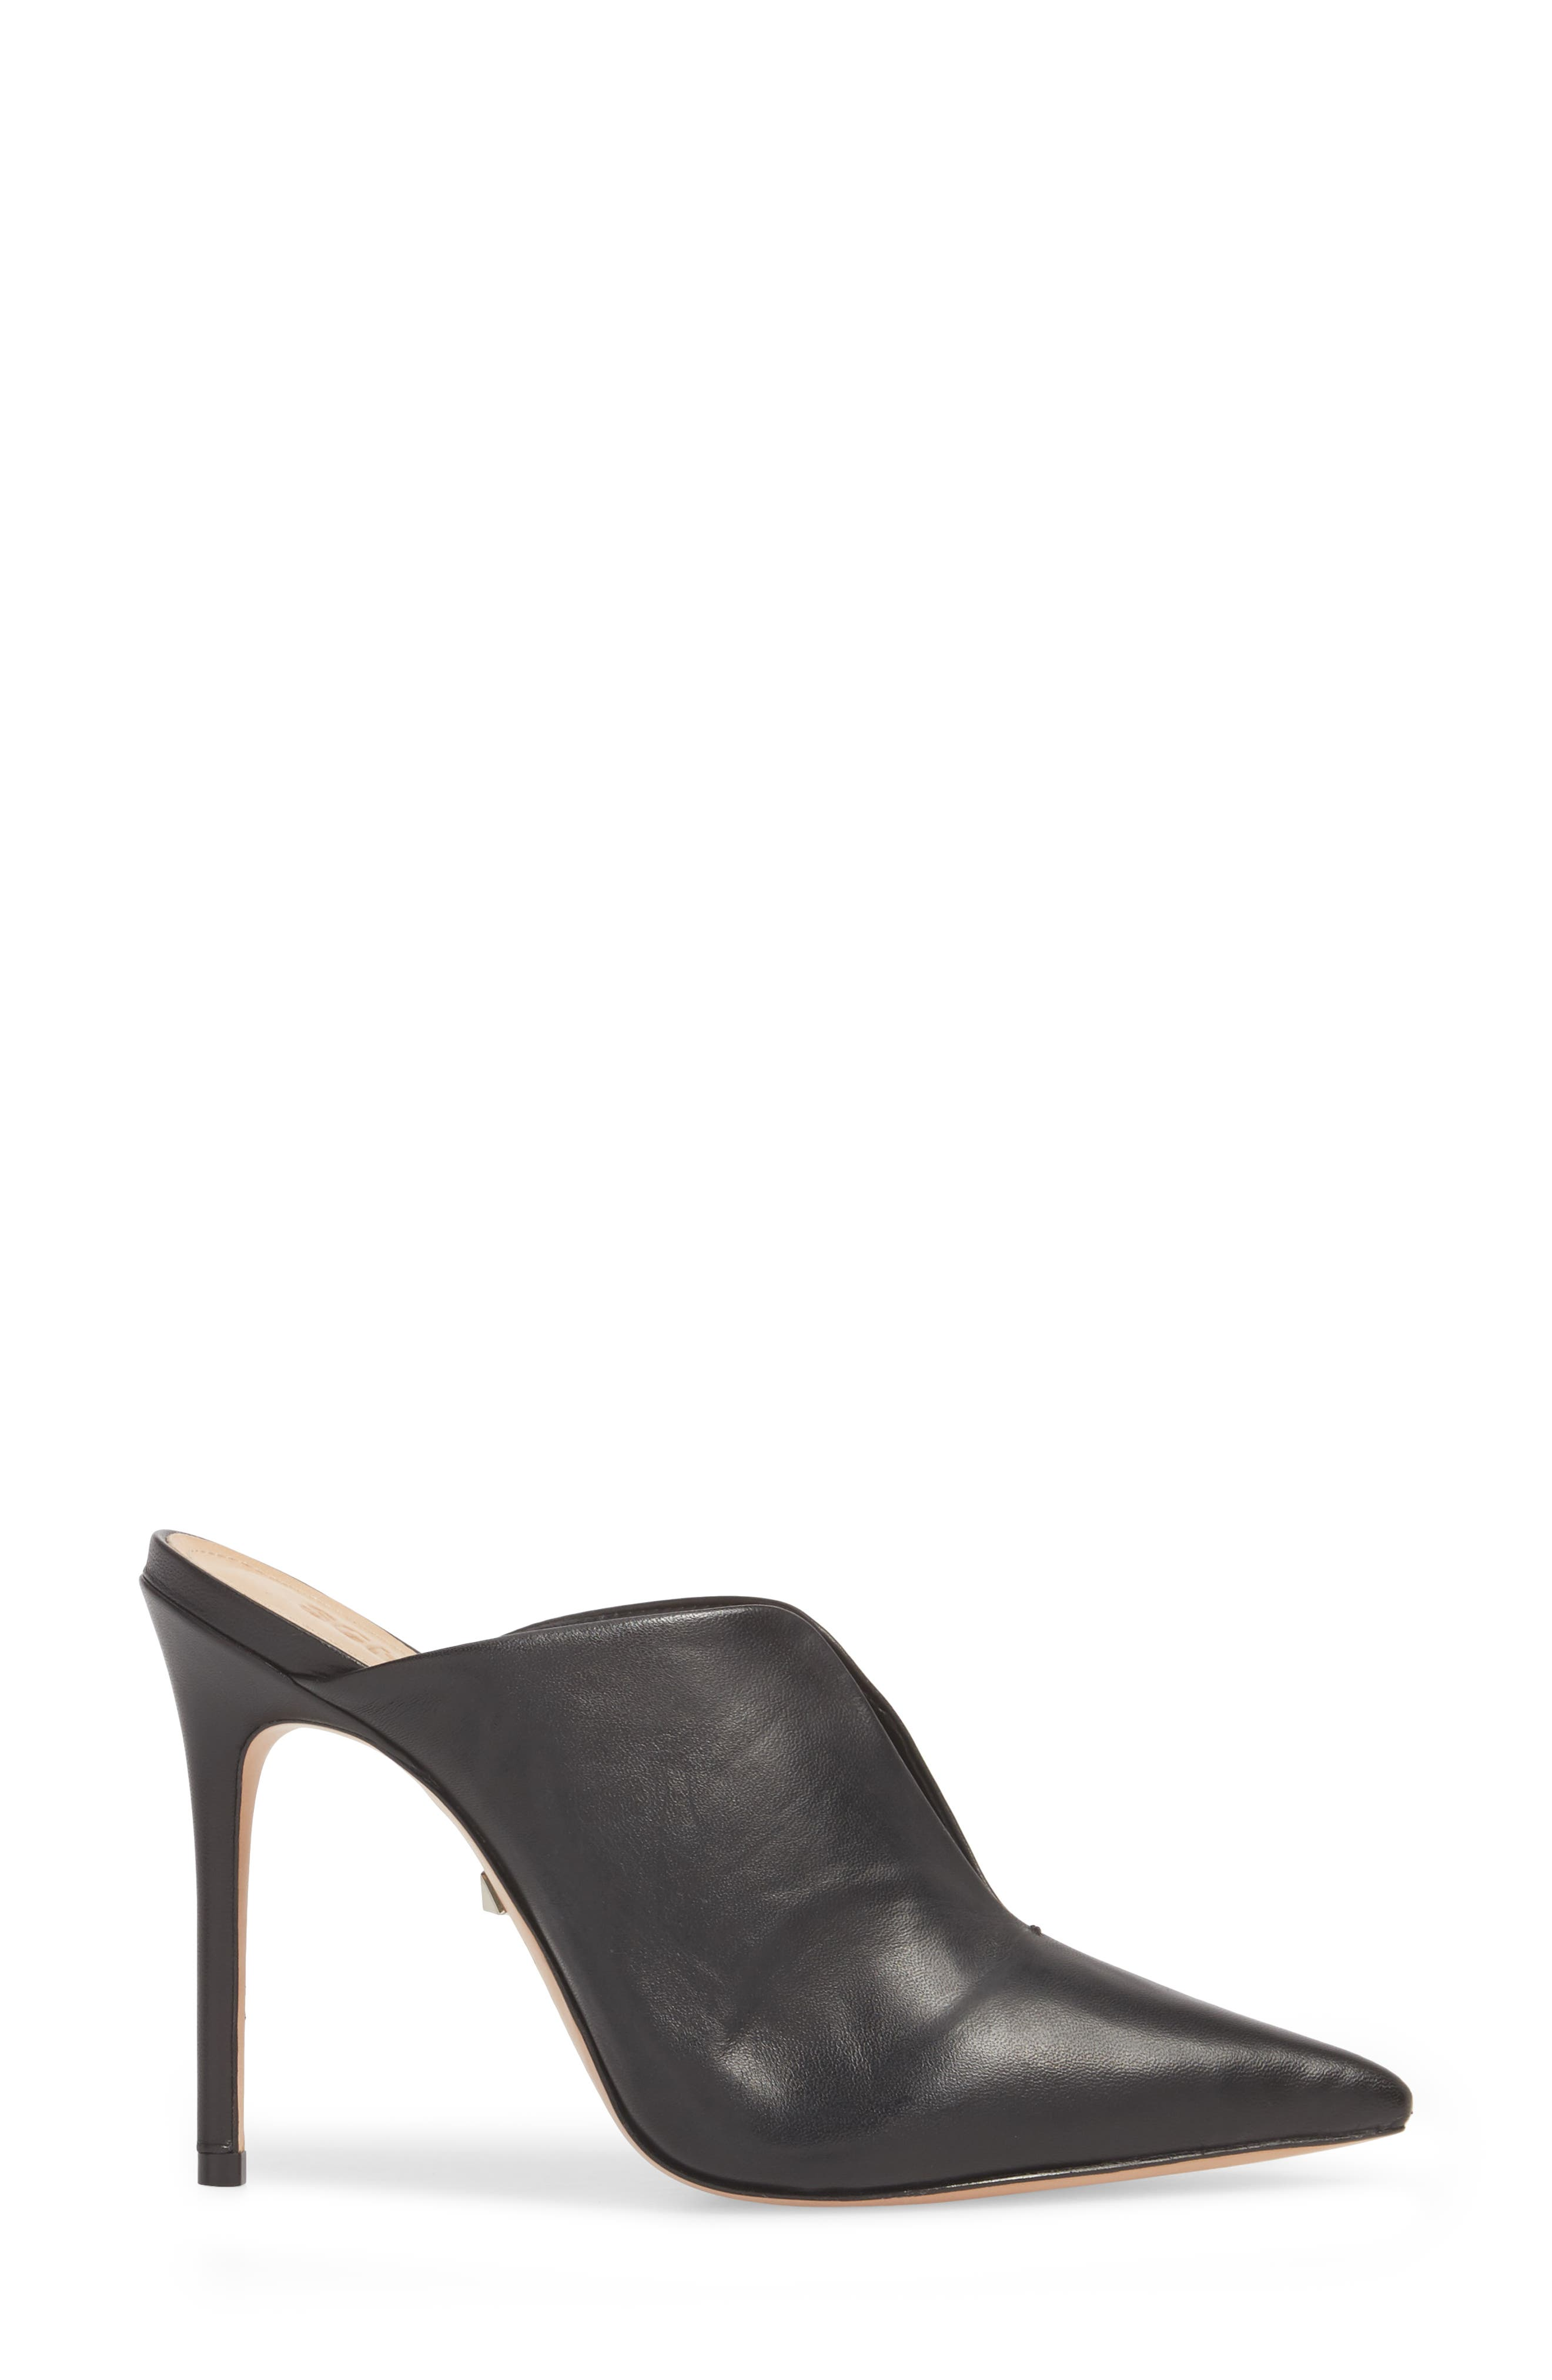 Docia Mule,                             Alternate thumbnail 3, color,                             BLACK LEATHER